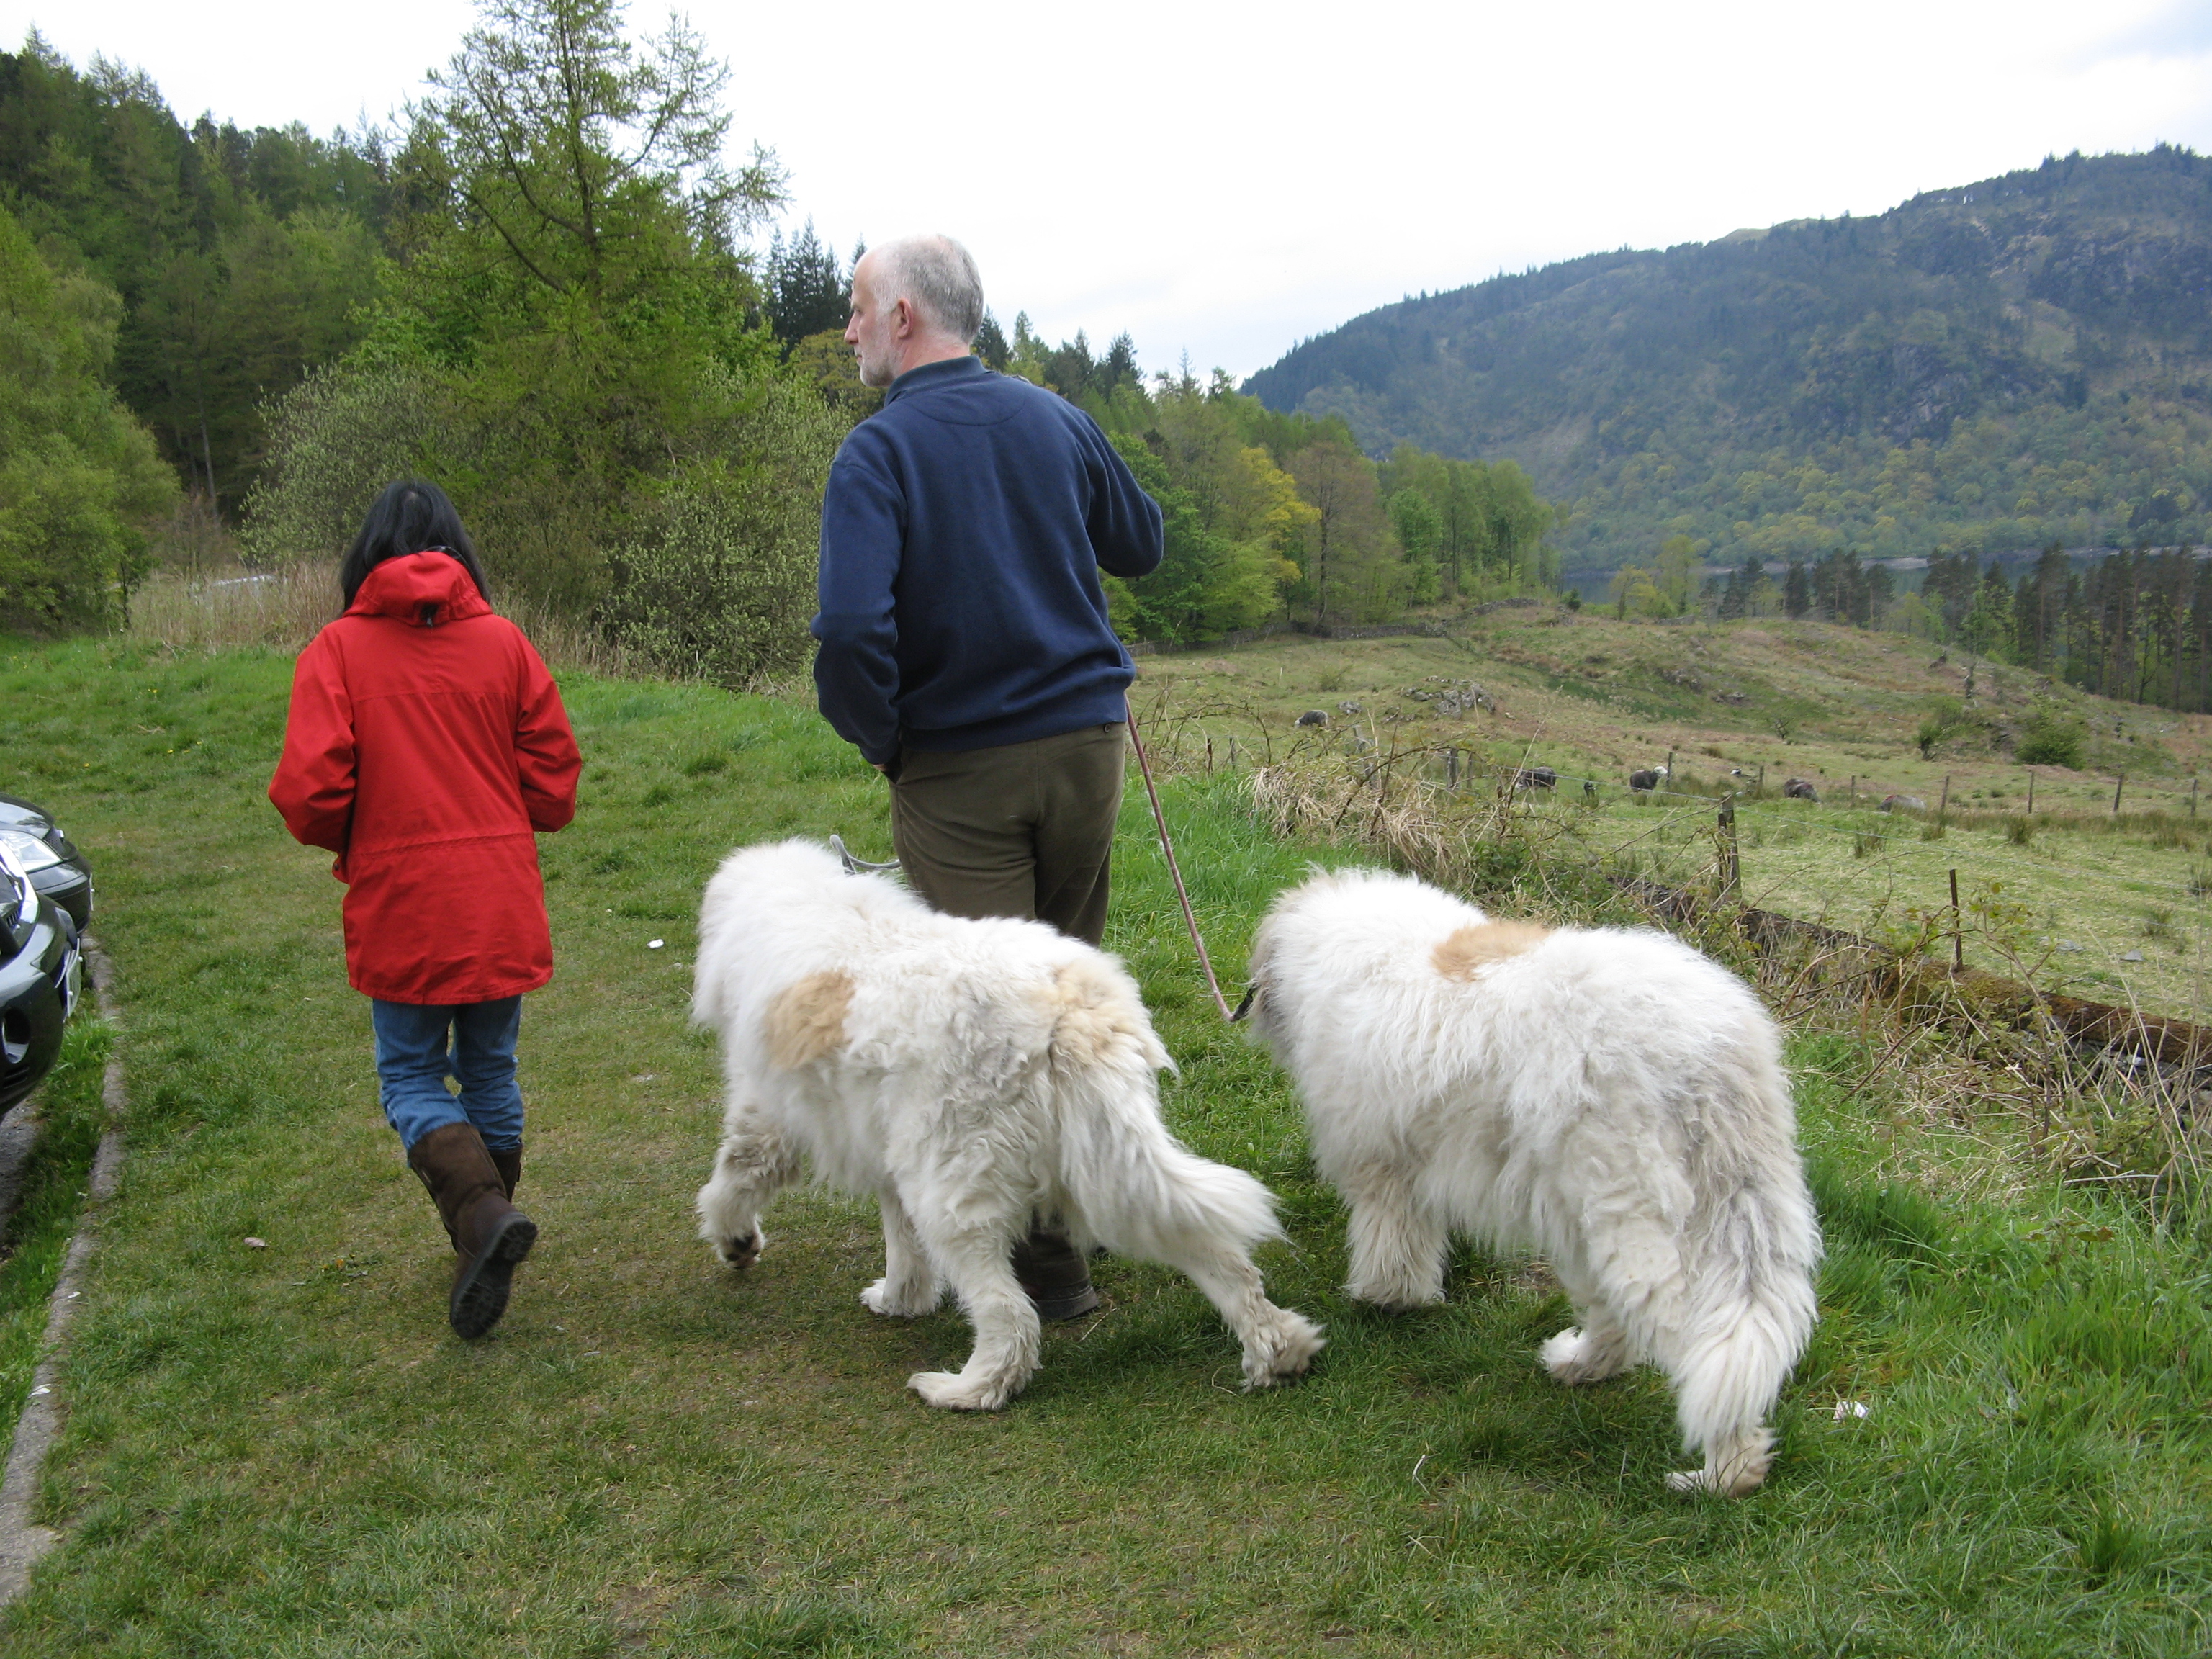 Our babies walking with us. Thirlmere is in the background, a manmade lake used as a reservoir.